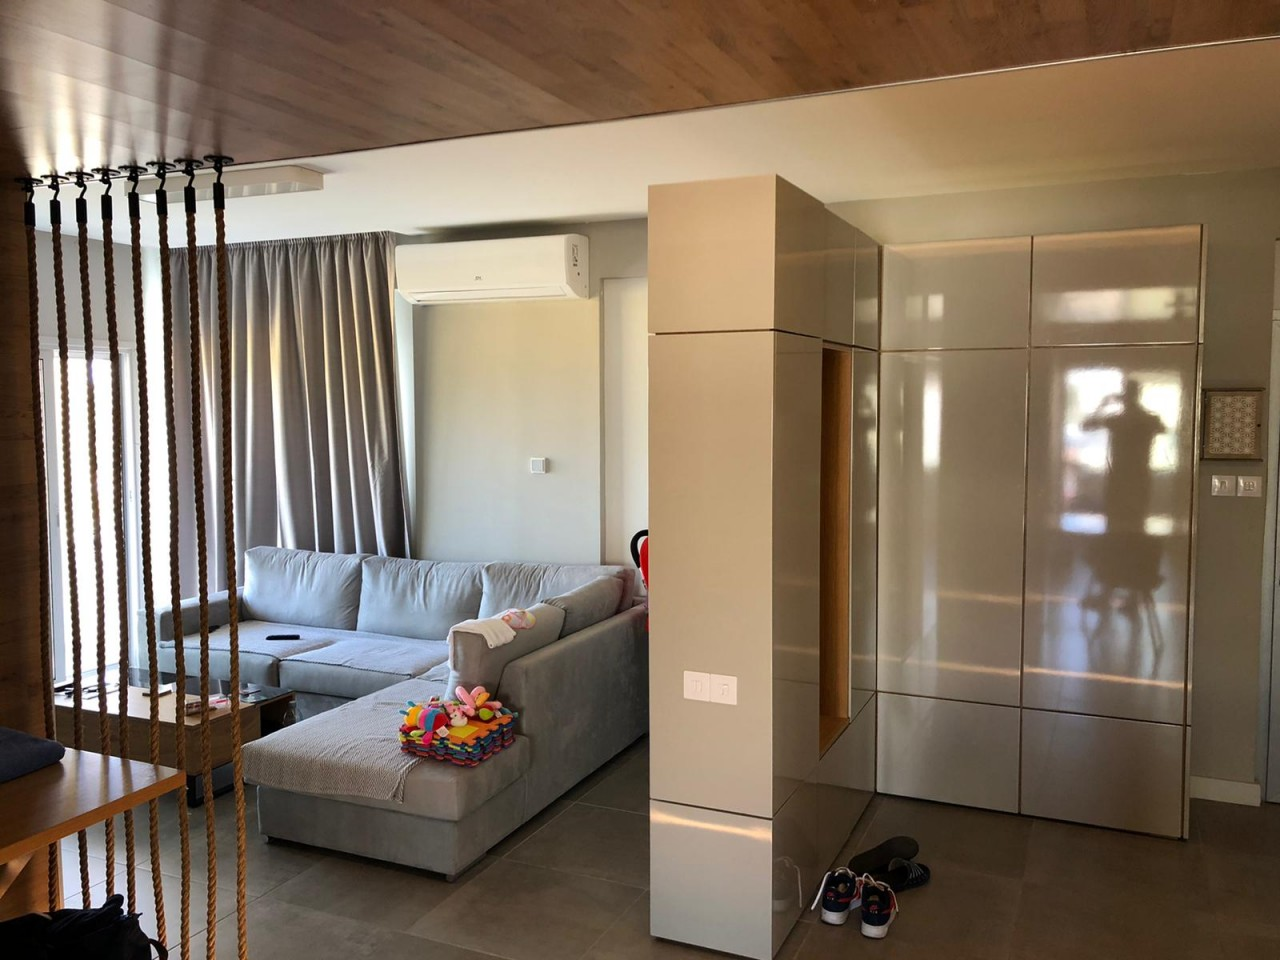 For Sale: Apartment (Flat) in Crowne Plaza Area, Limassol    Key Realtor Cyprus